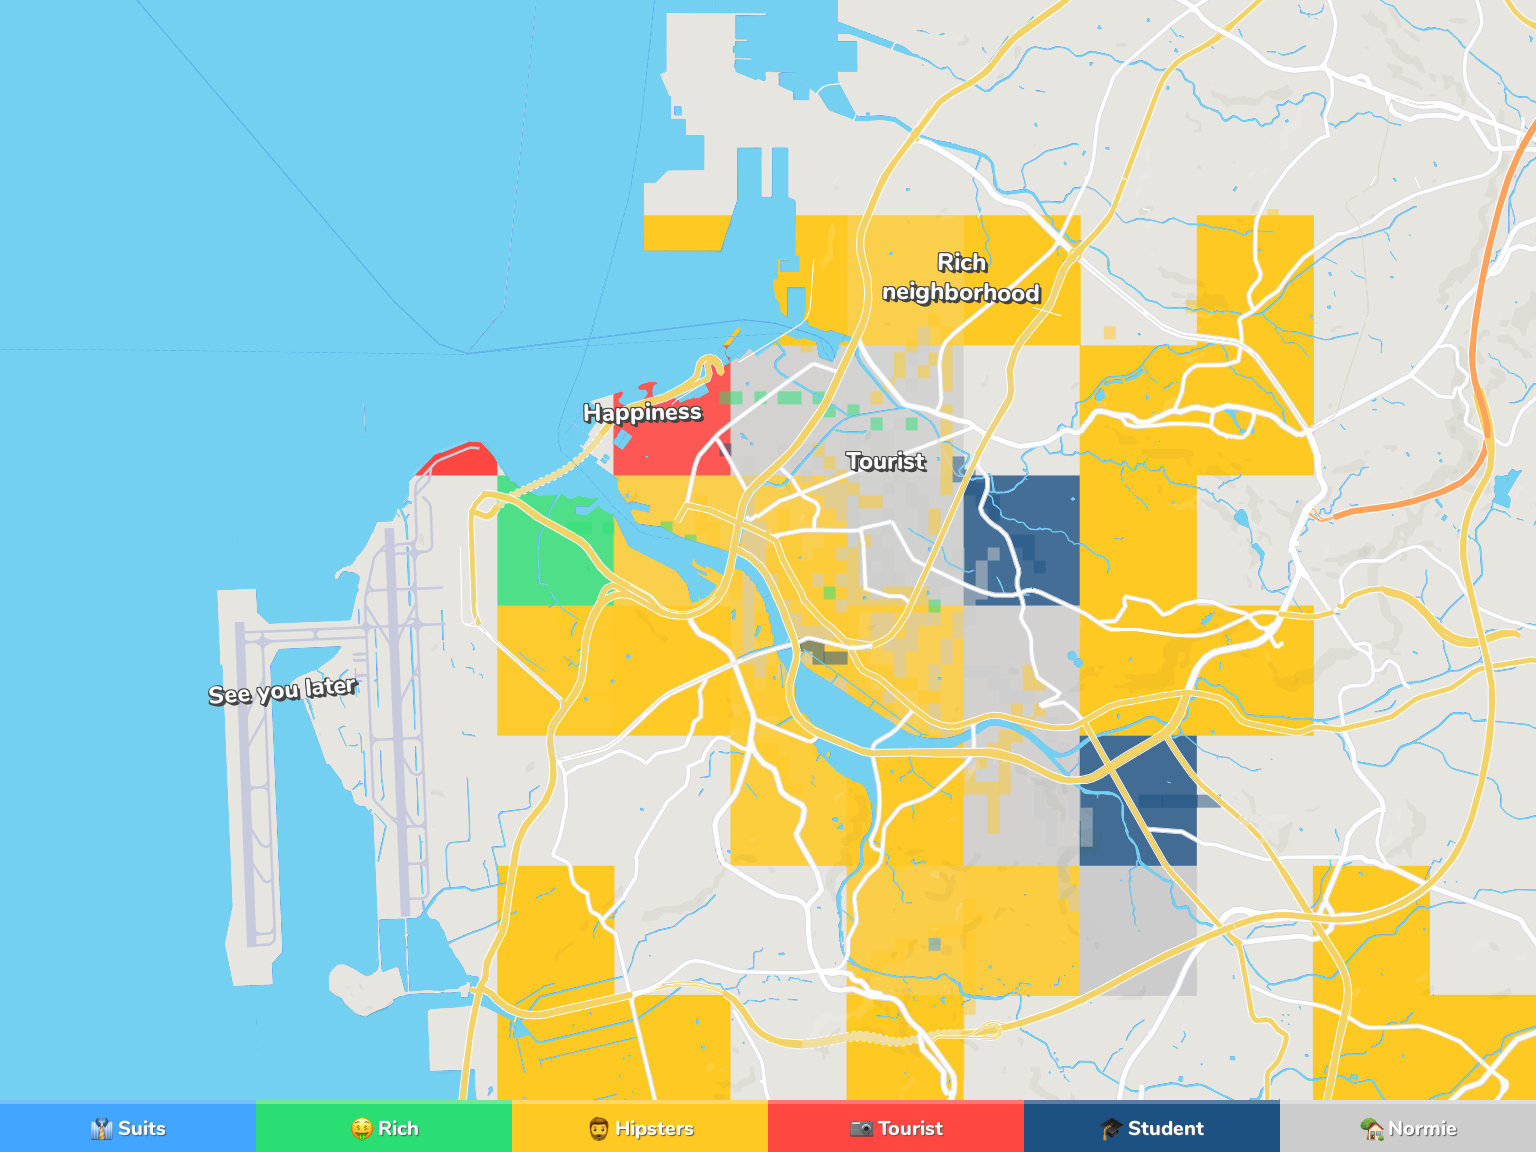 Naha Neighborhood Map